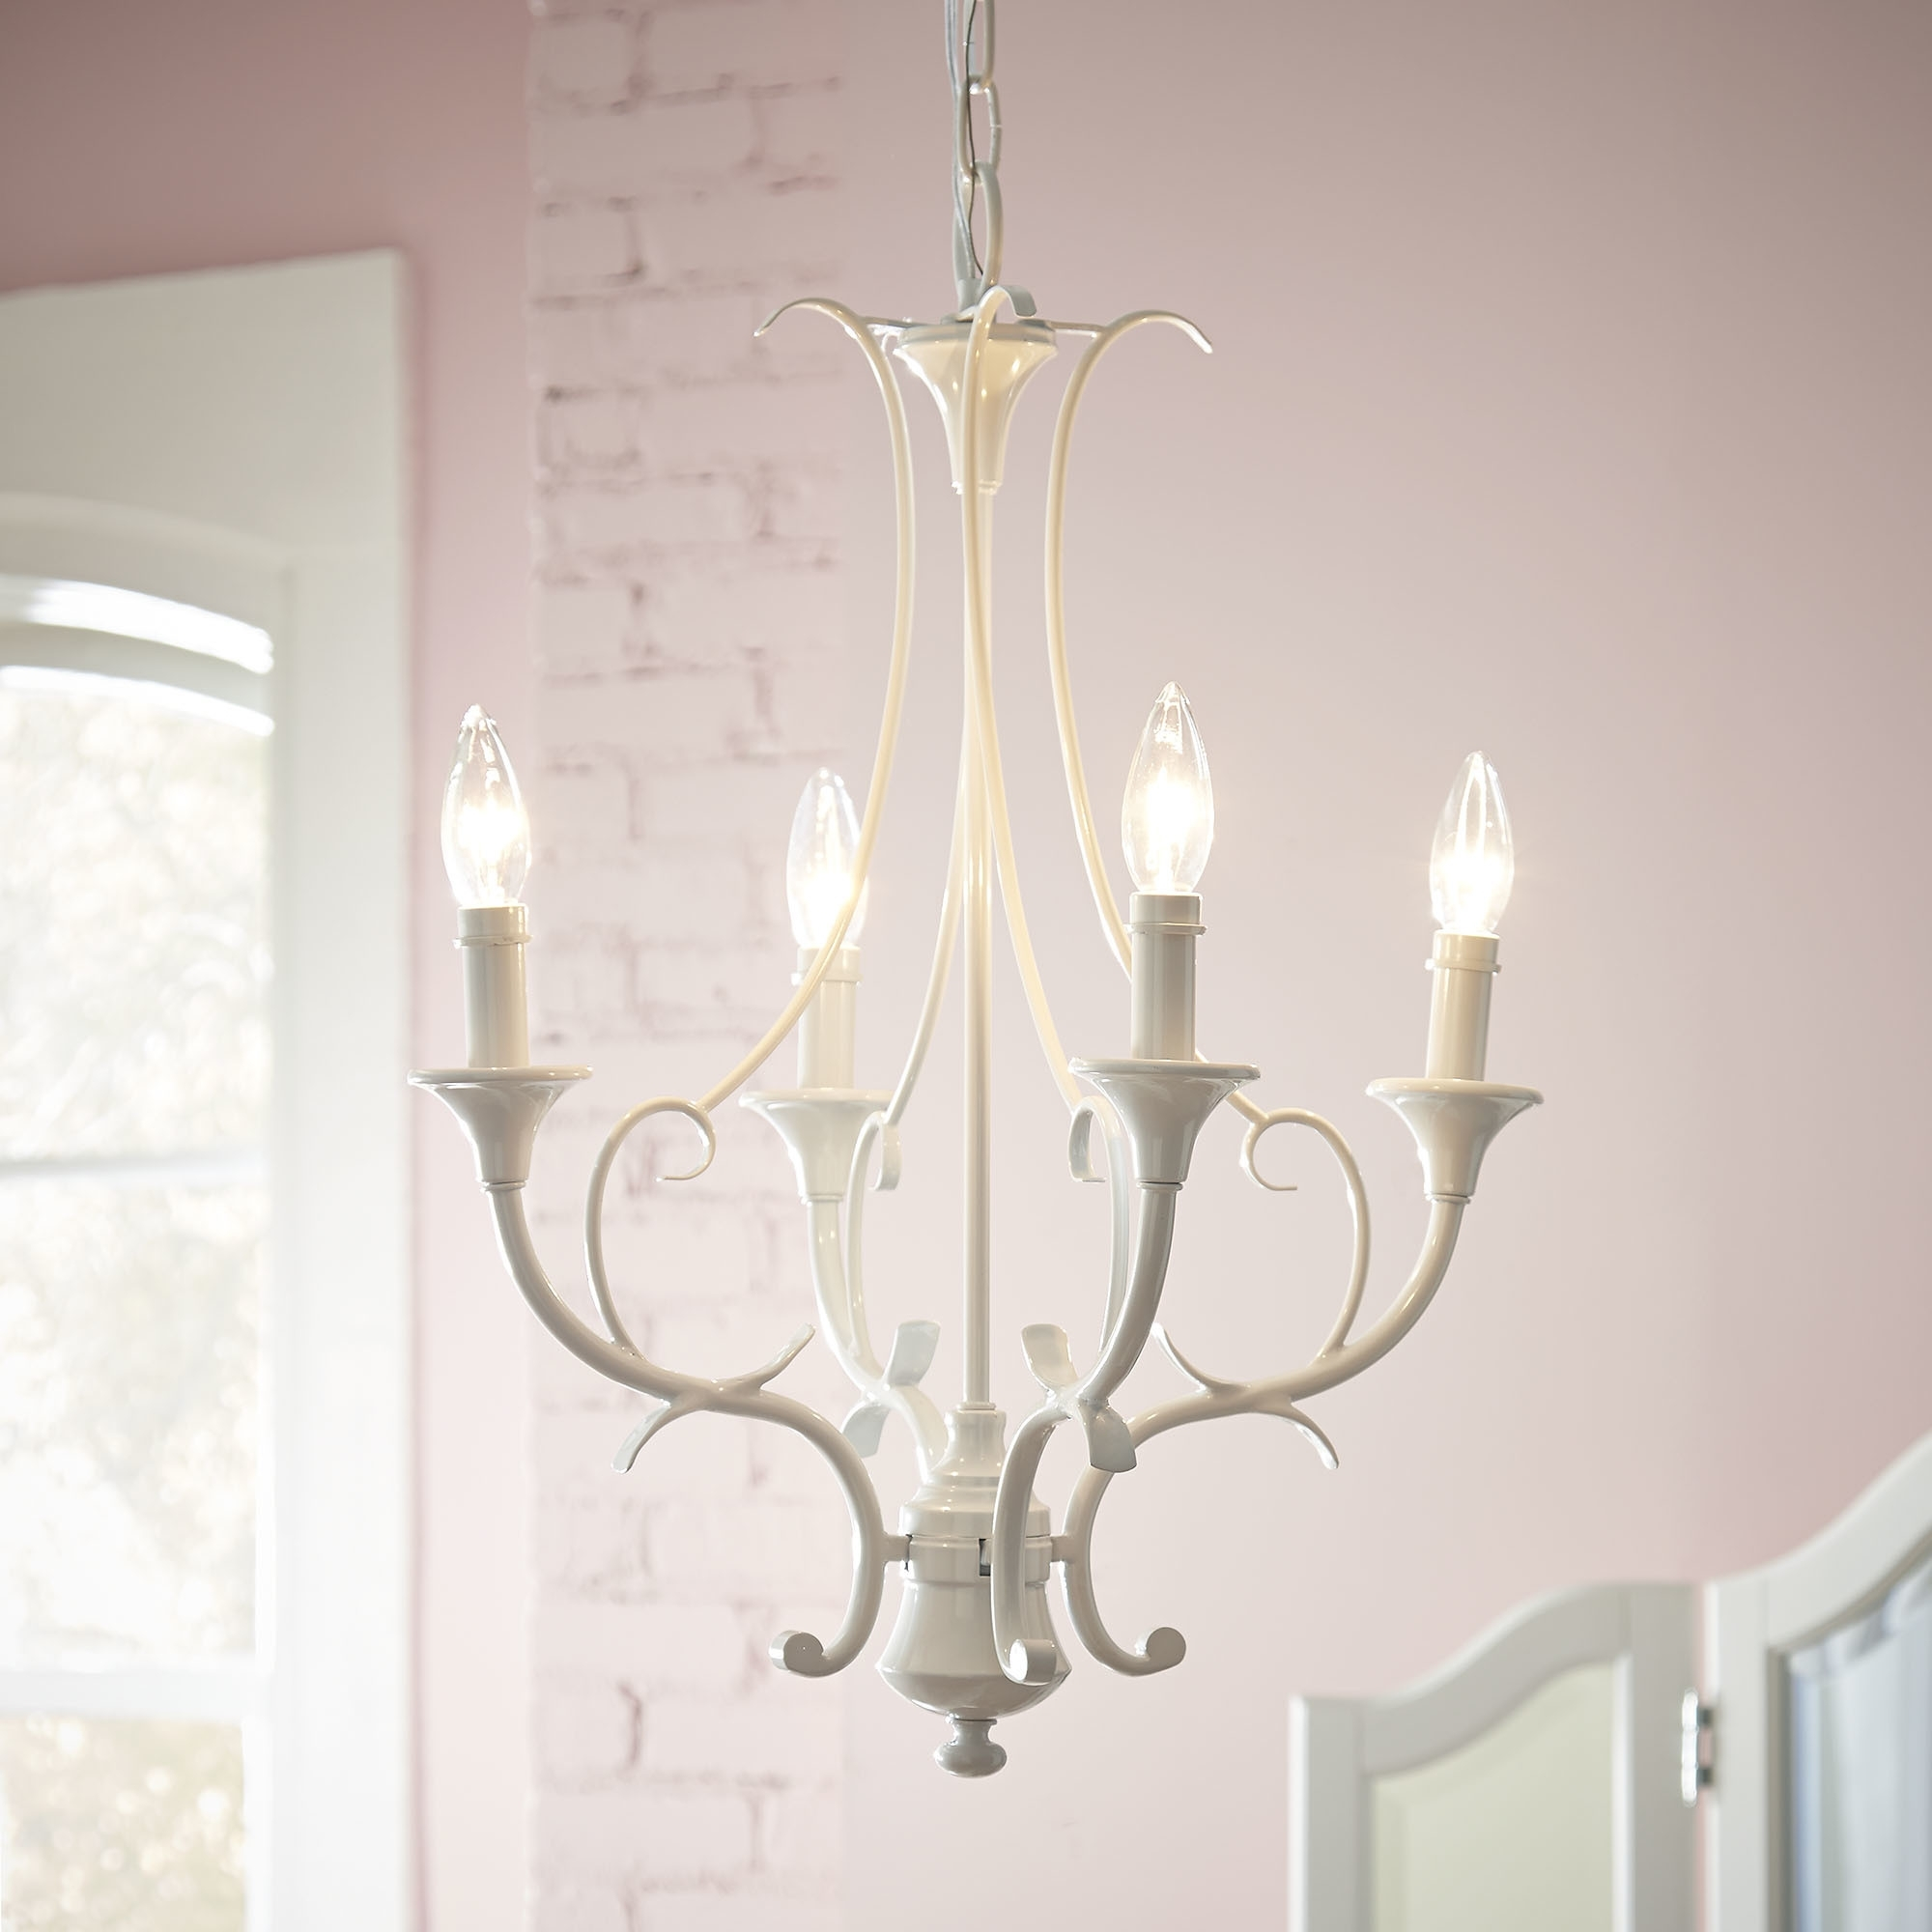 Widely Used Wayfair Chandeliers Throughout Photos Hgtv Contemporary Wine Room With Dining Table And Chandelier (View 7 of 15)